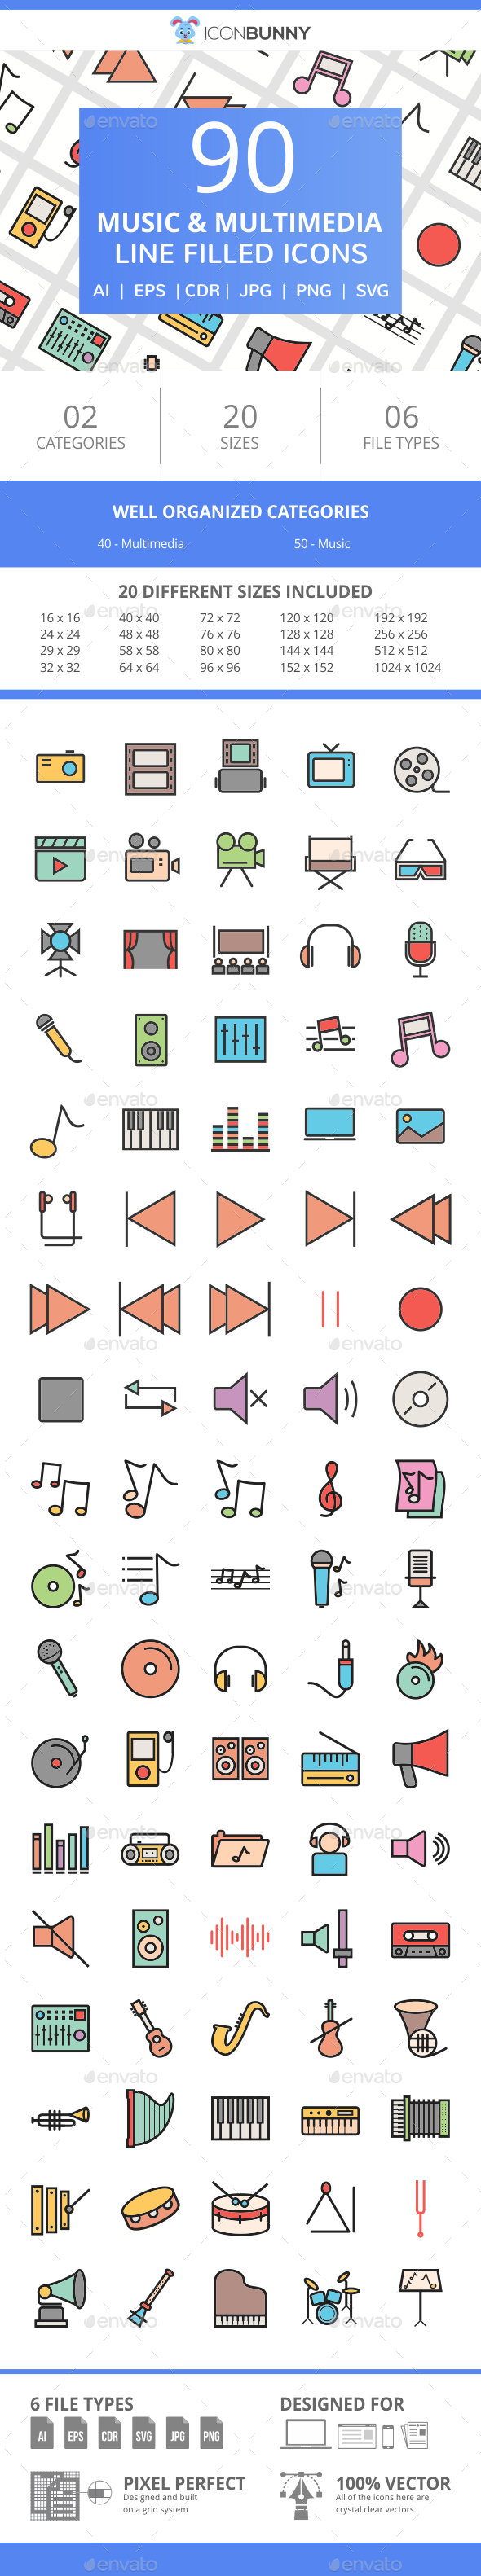 90 Music & Multimedia Filled Line Icons